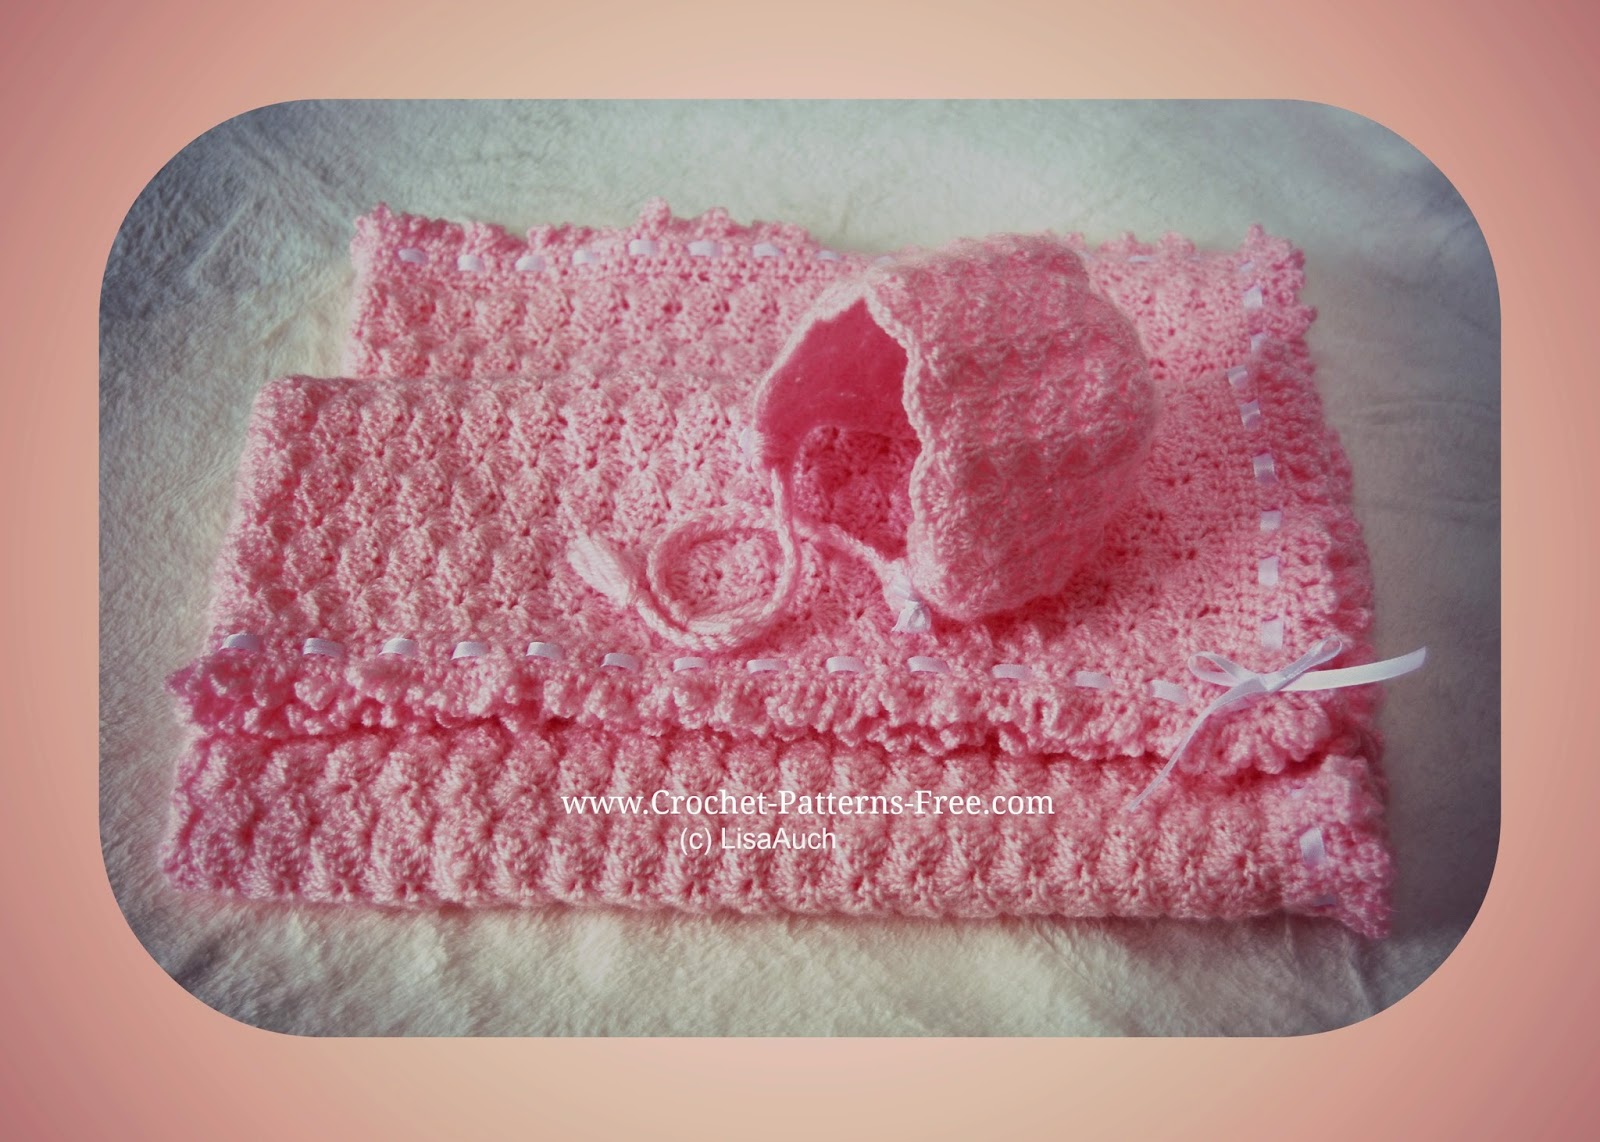 Free Crochet Baby Blanket Pattern in Shell Stitch